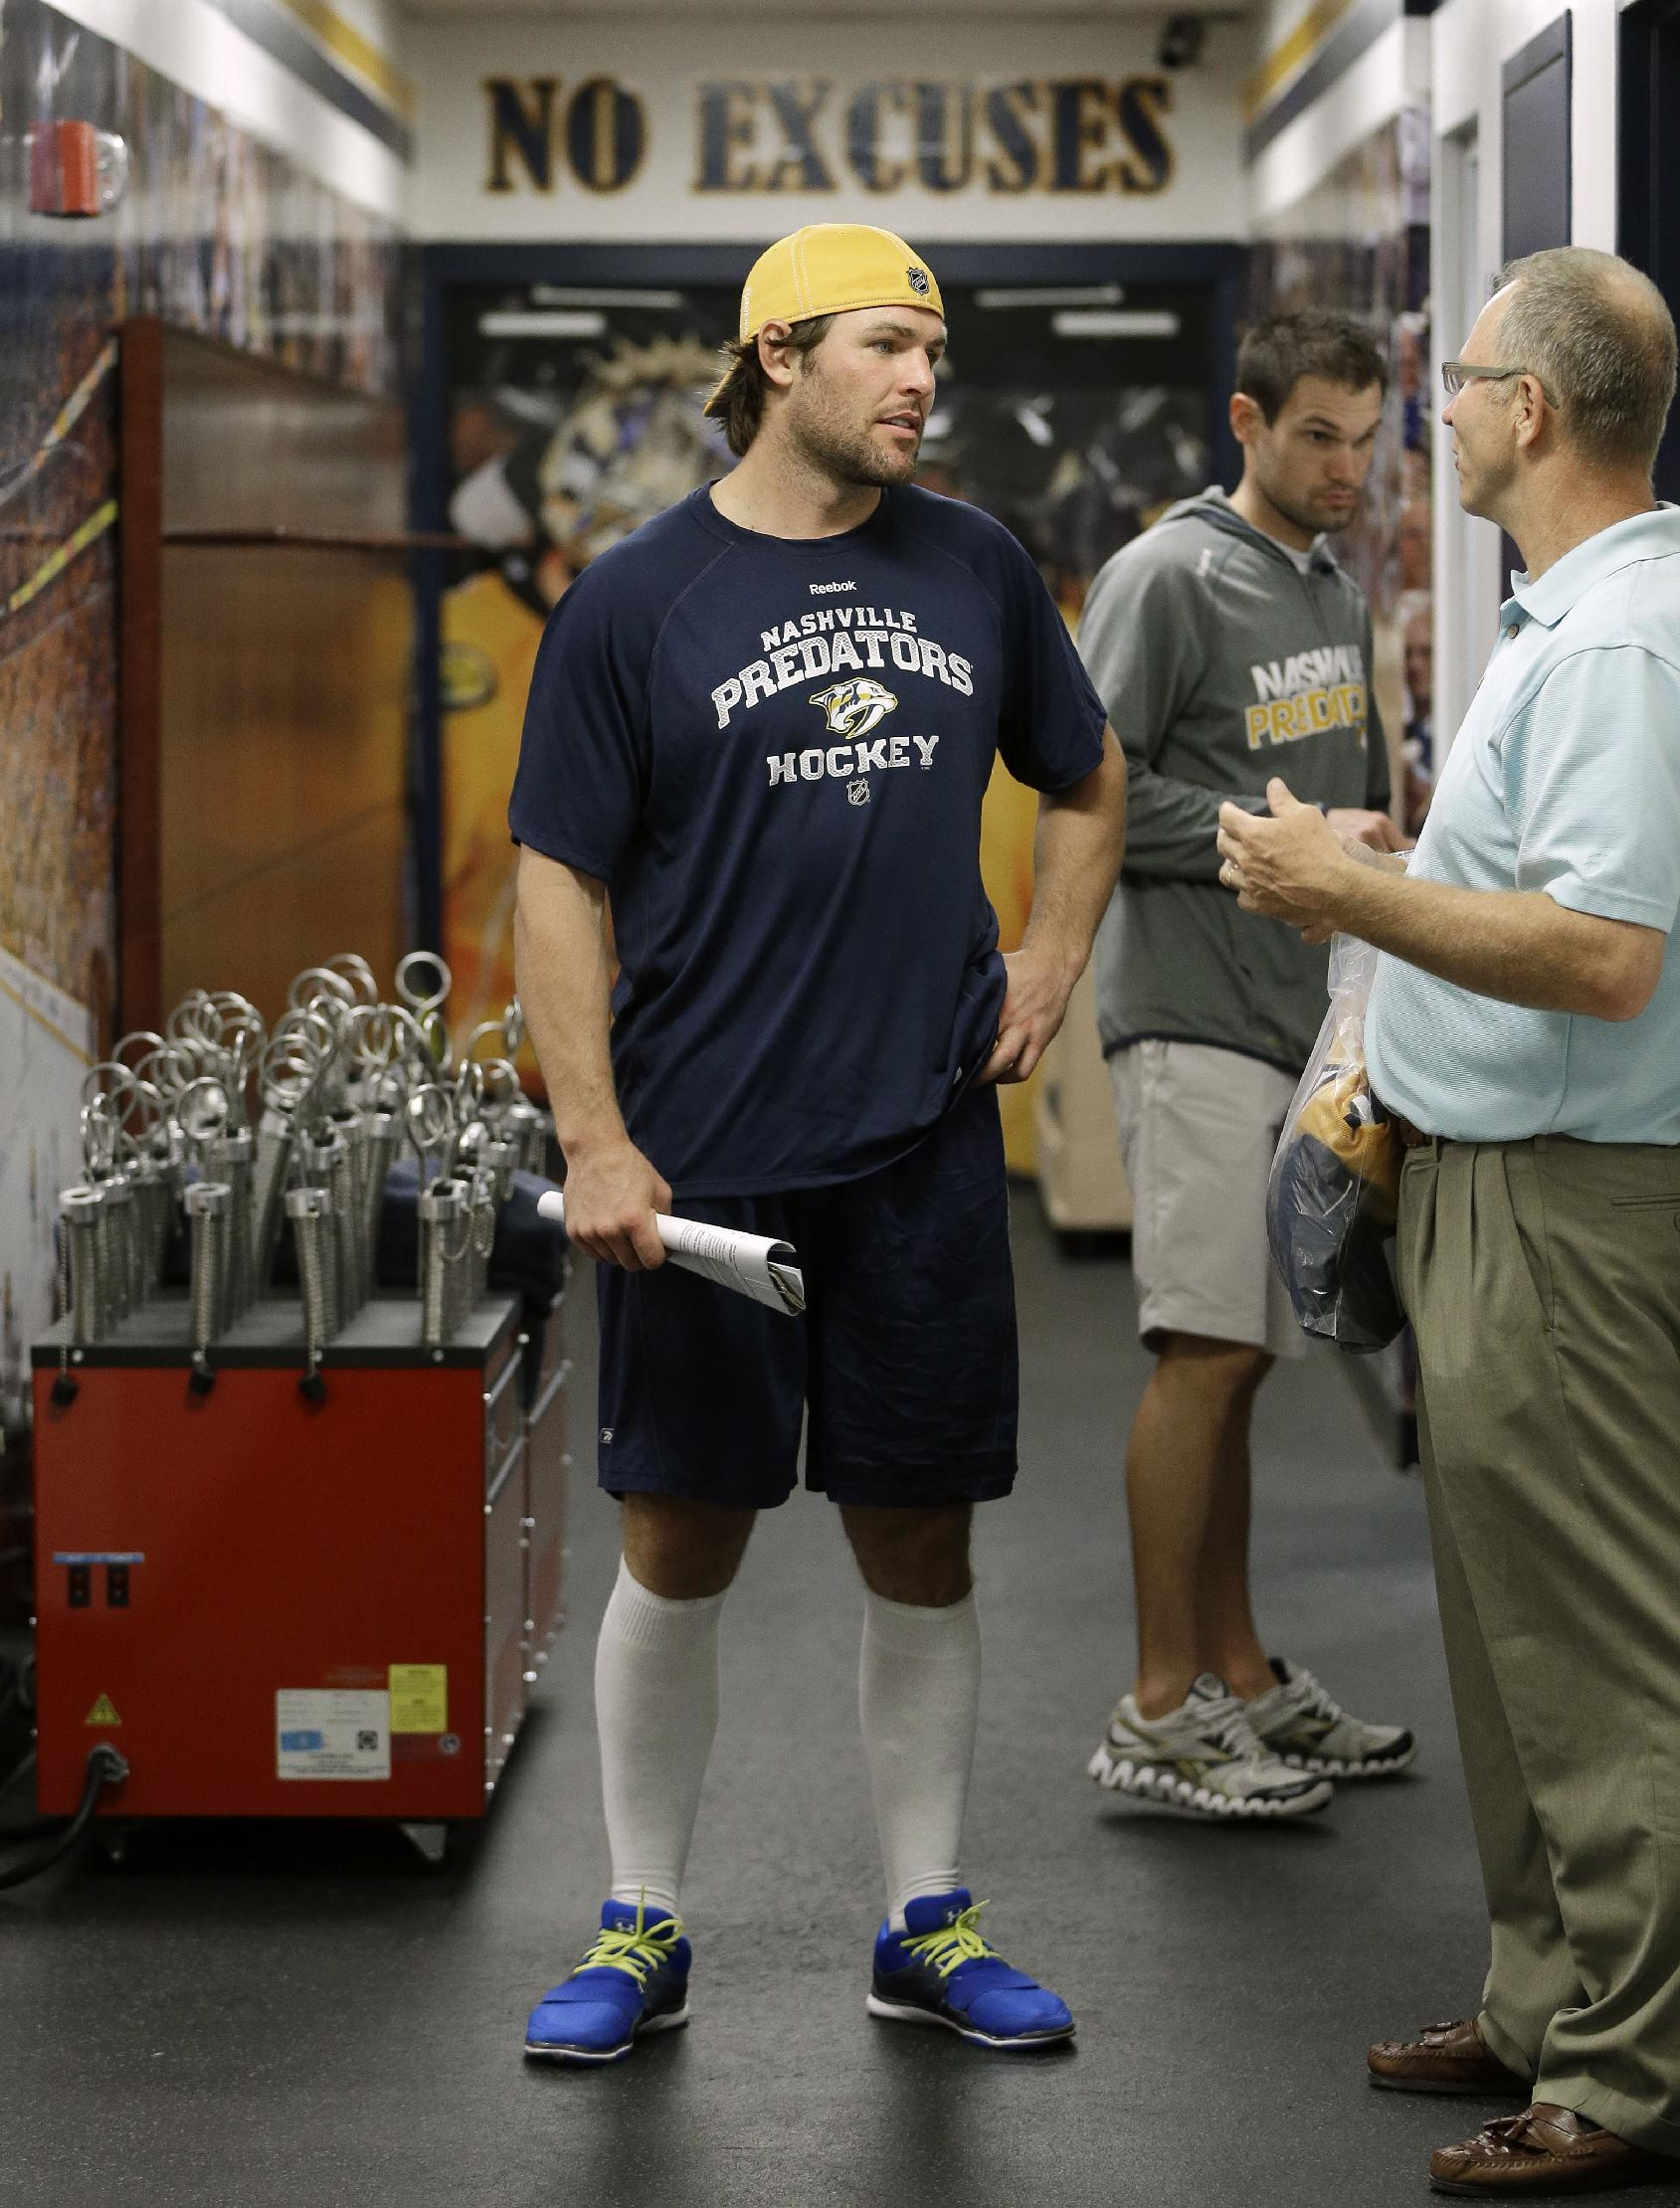 Nashville Predators center Mike Fisher, left, talks outside the locker room on the first day of NHL hockey training camp Wednesday, Sept. 11, 2013, in Nashville, Tenn. The team will try to bounce back from a rare losing season